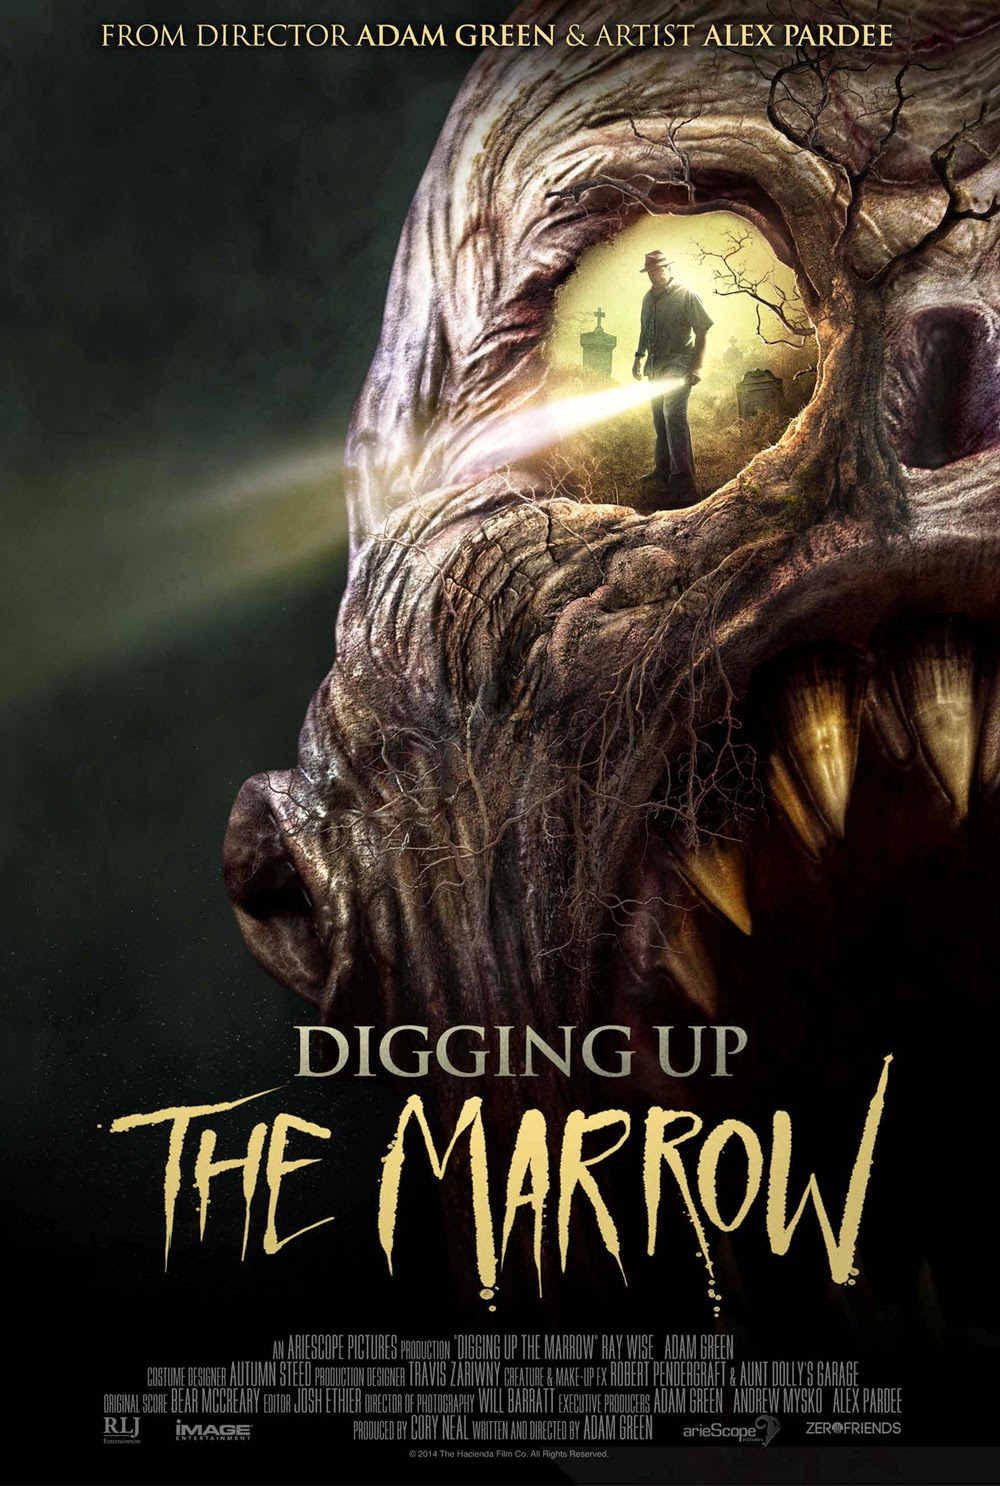 DVD Review: Digging Up The Marrow